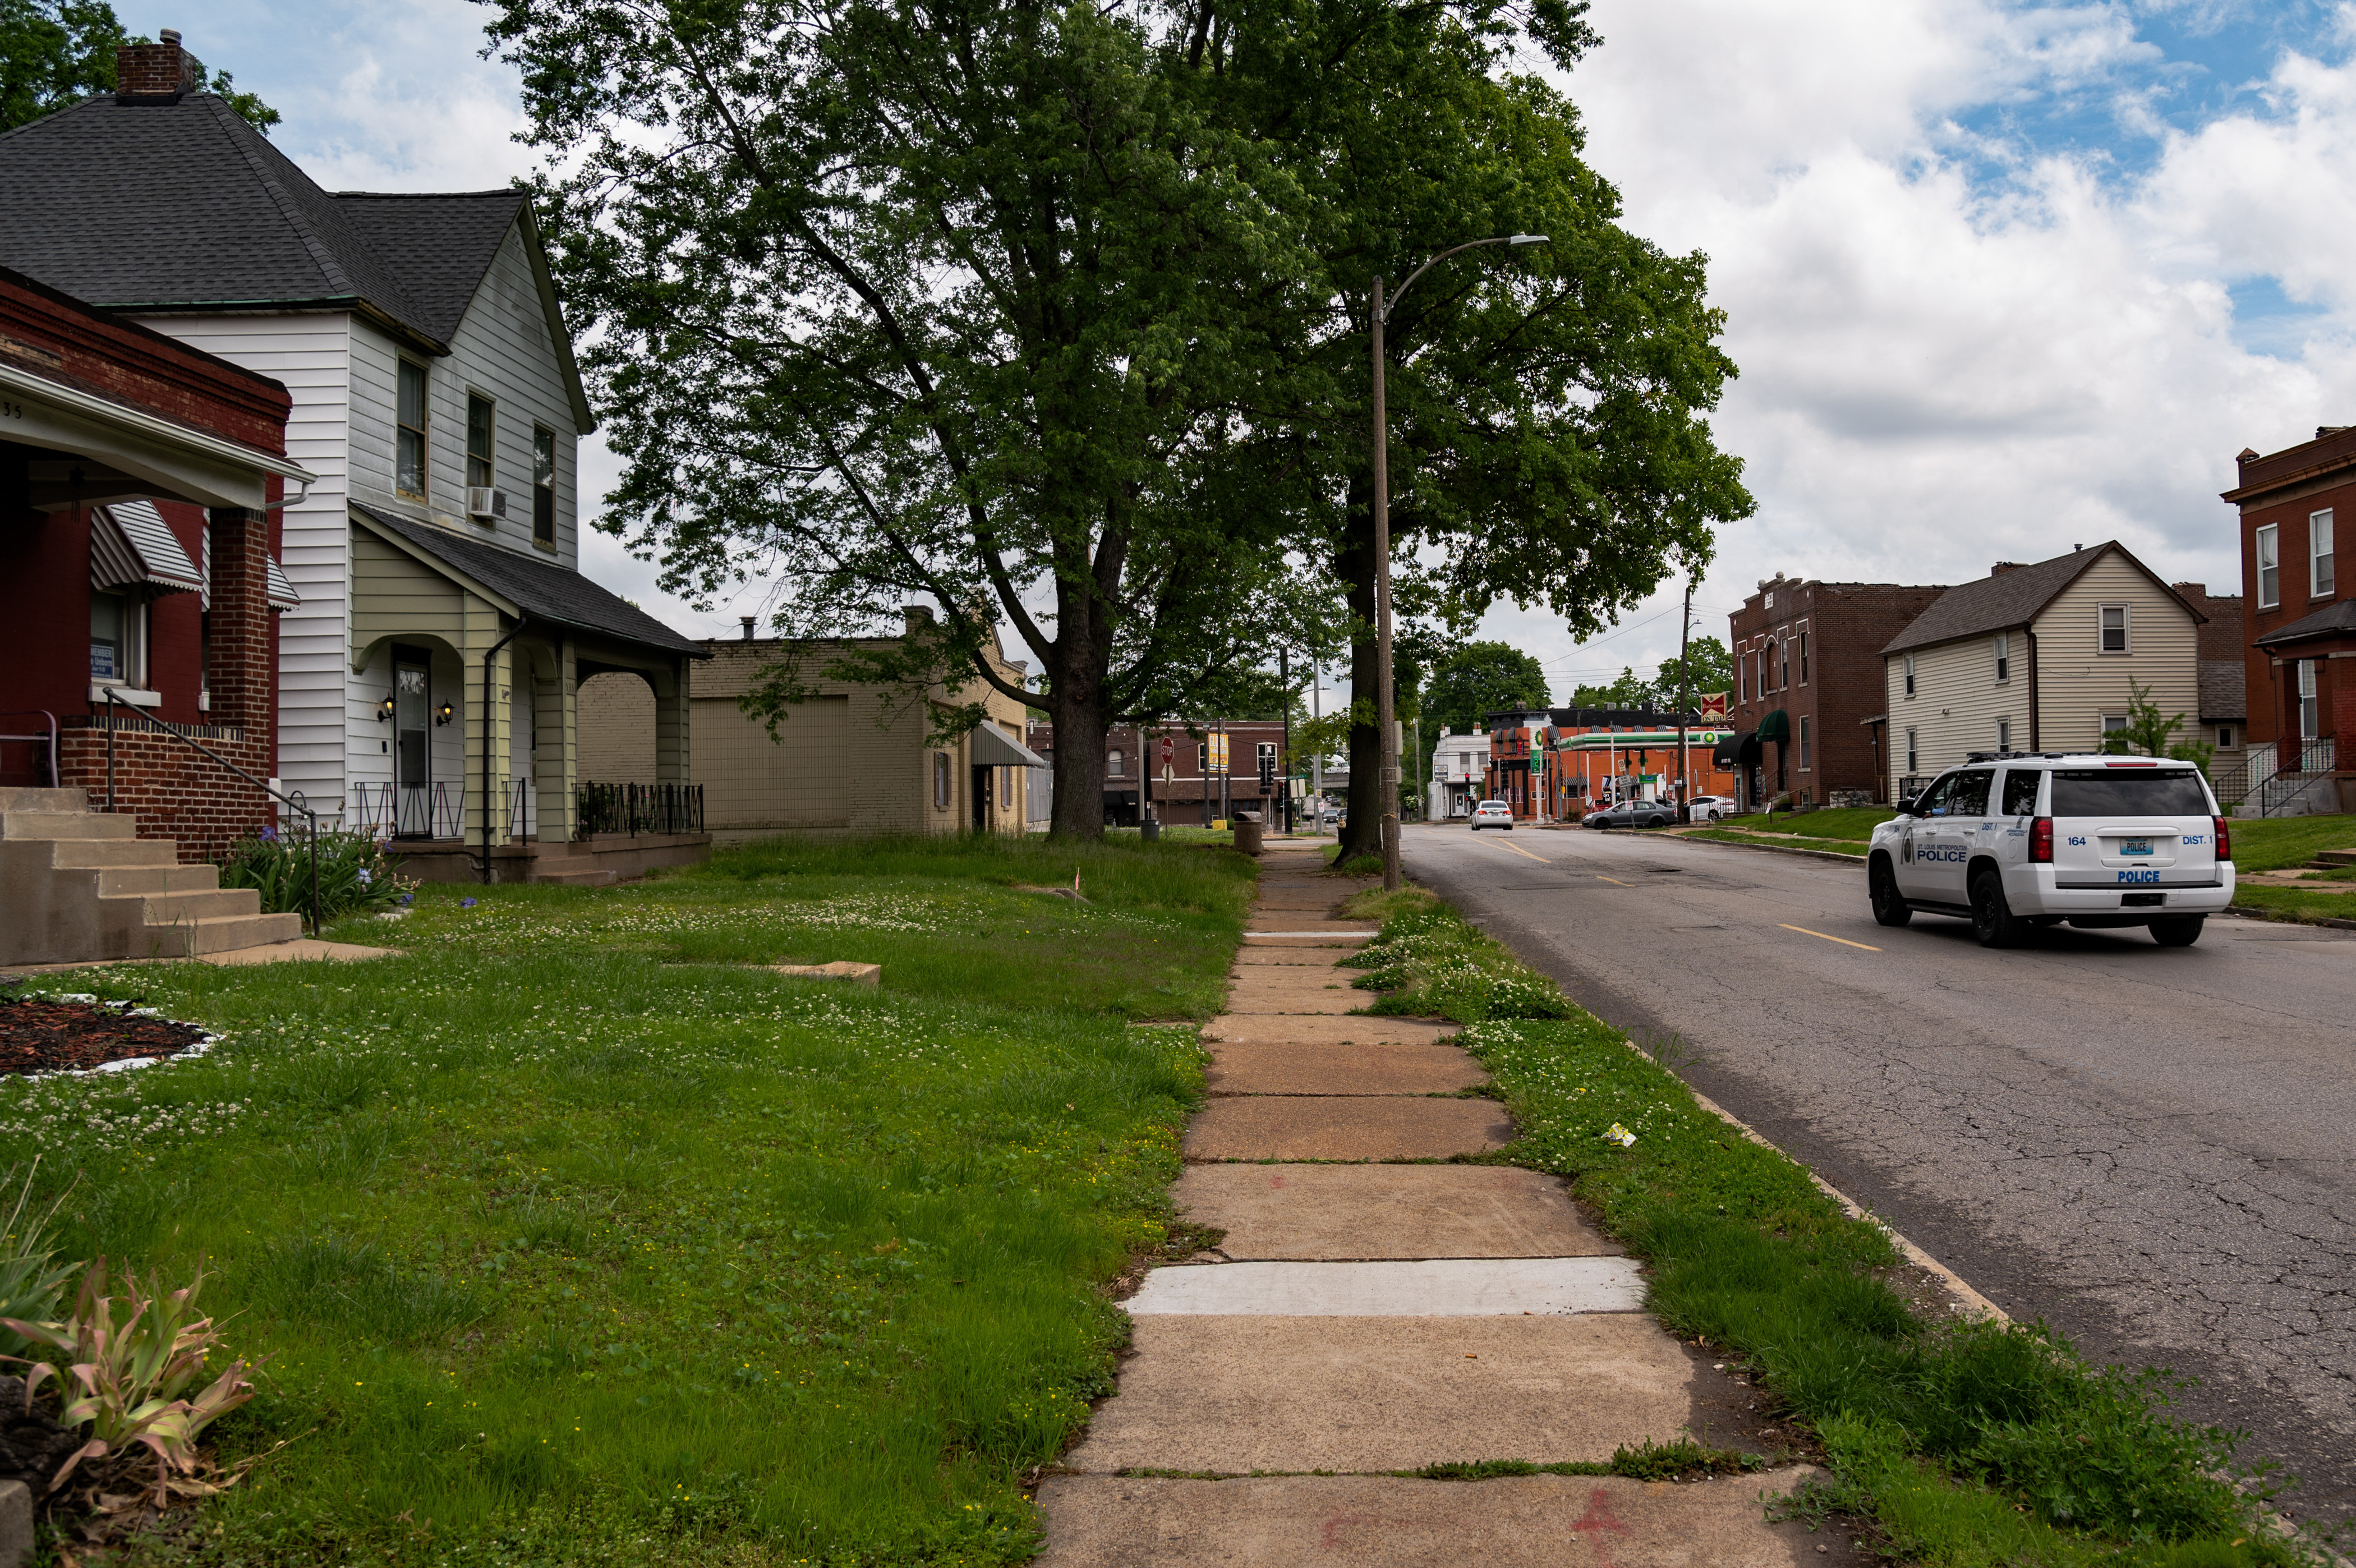 The area around 533 and 535 Bates Avenue is seen along Bates Avenue on May 17, 2021 in St. Louis, Missouri. Photo by Michael B. Thomas for The Intercept